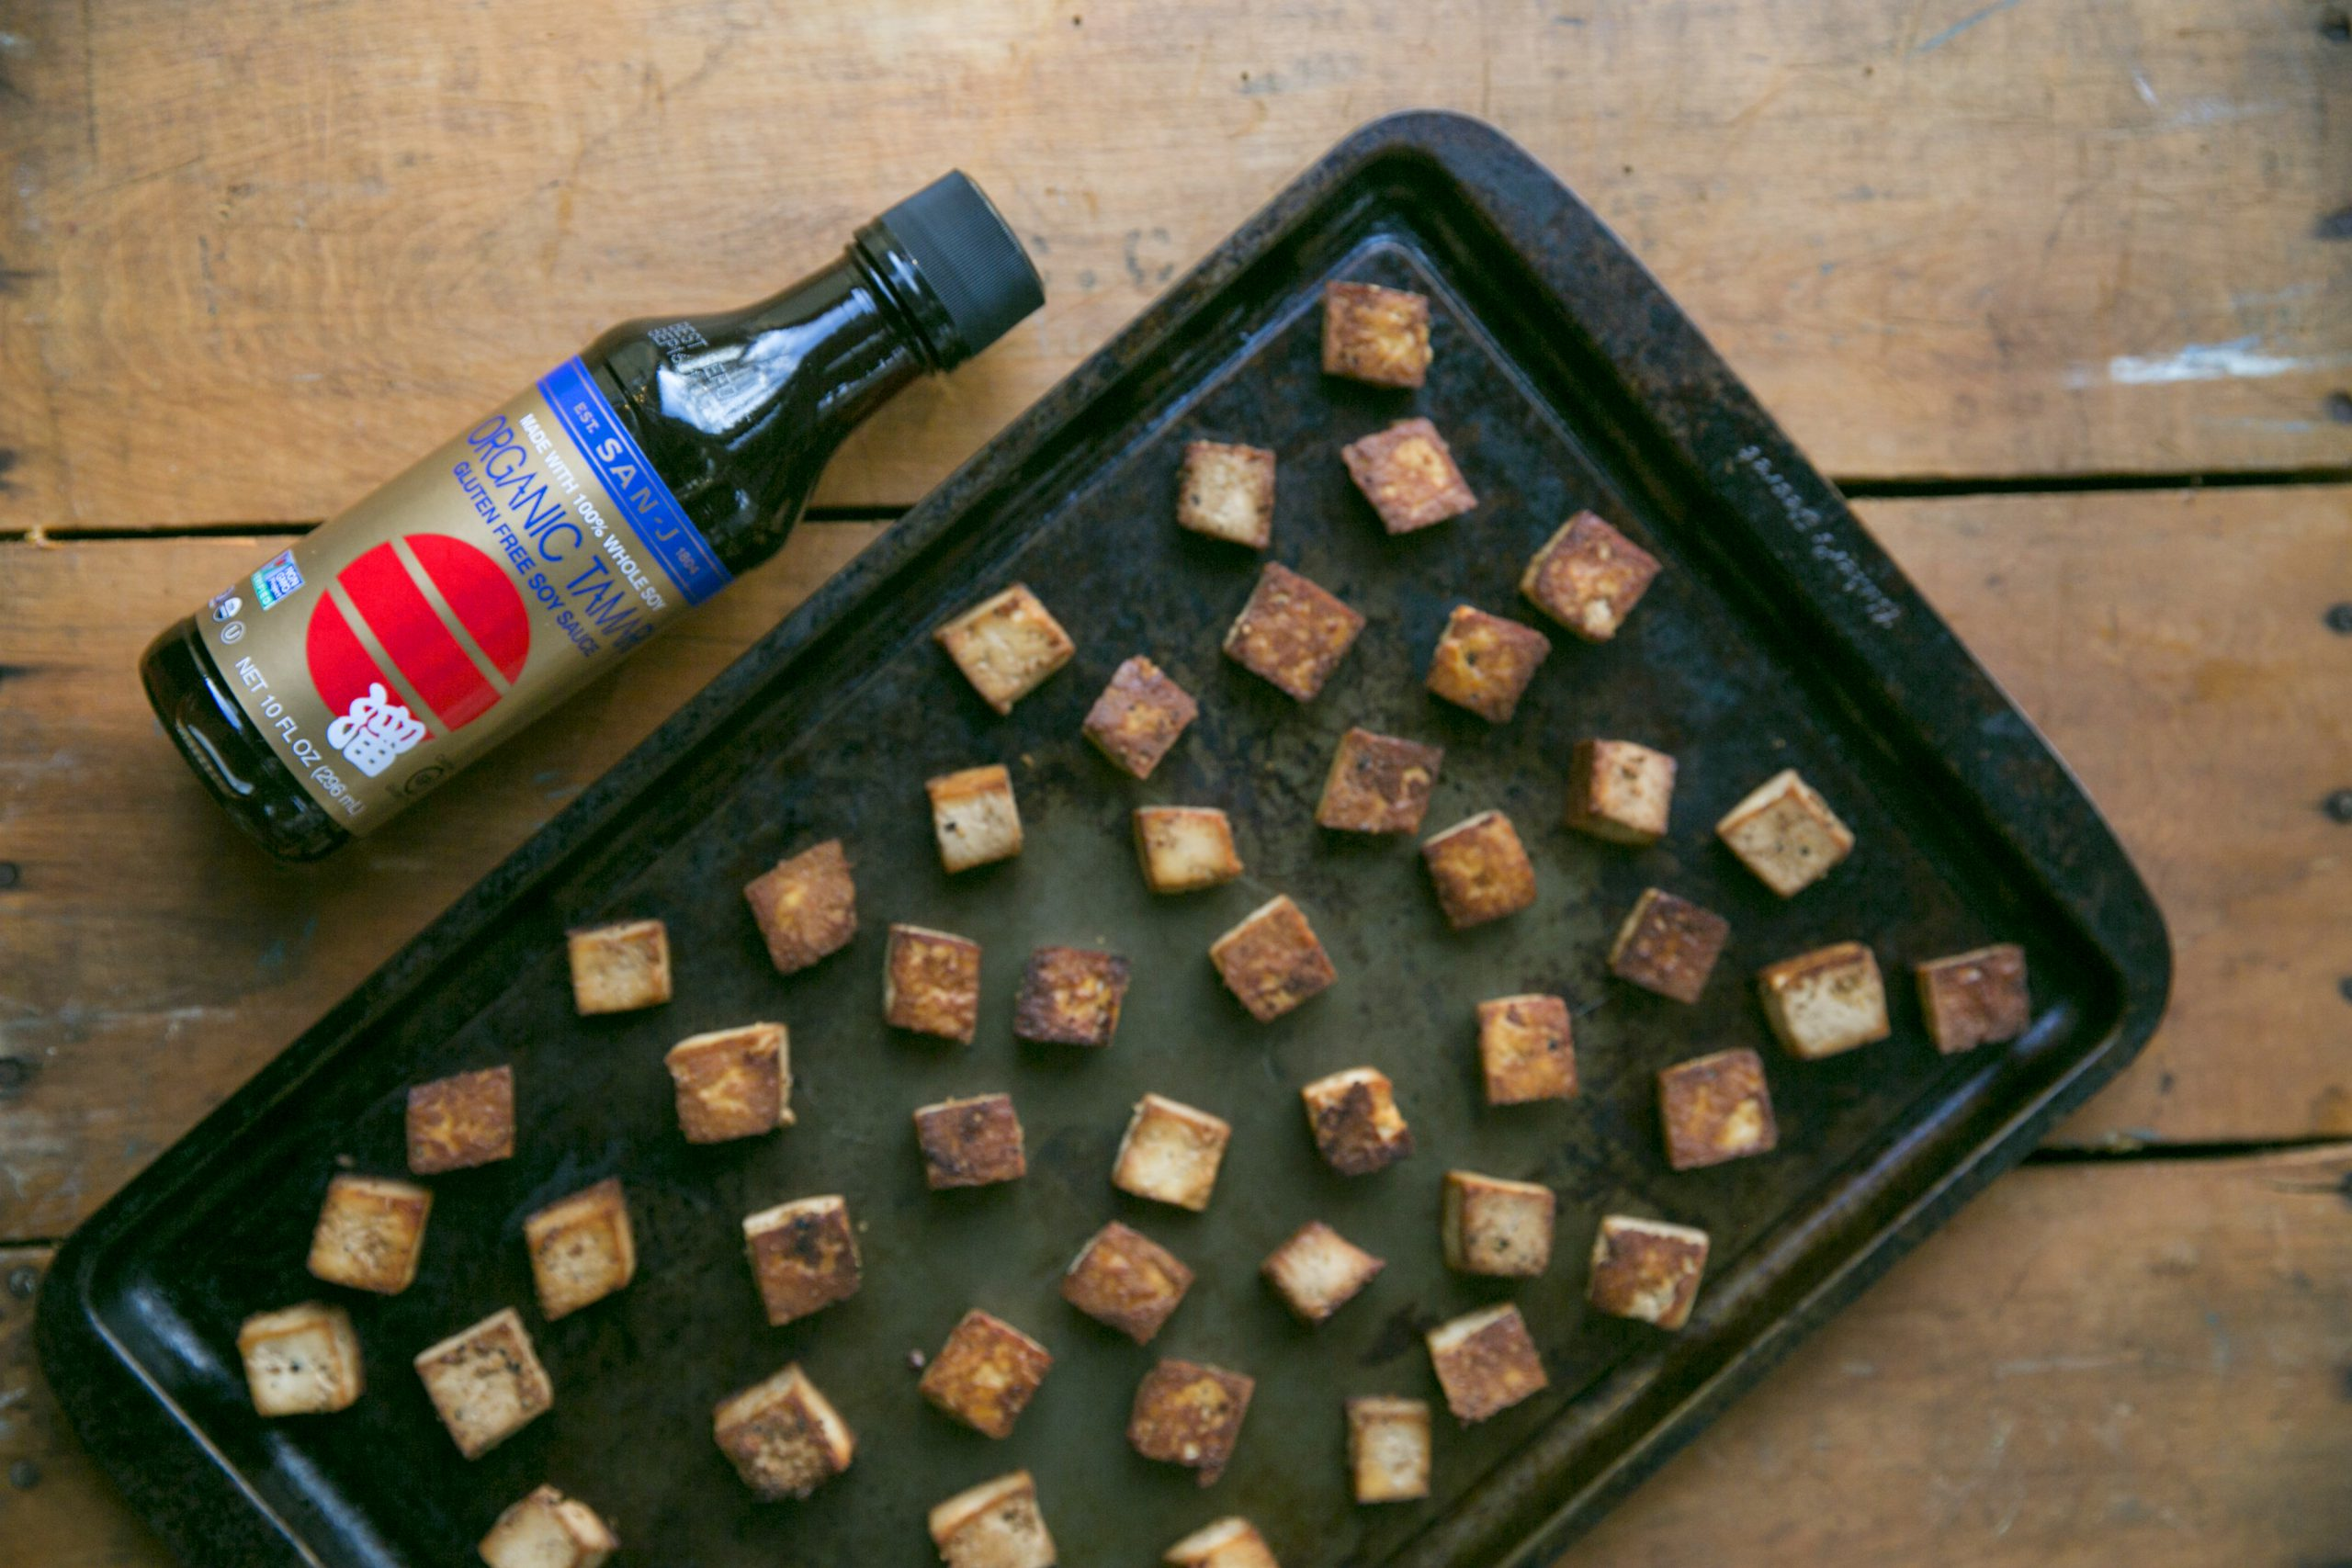 San-J organic tofu with in a baking tray with a bottle of organic tamari soy sauce by San-J